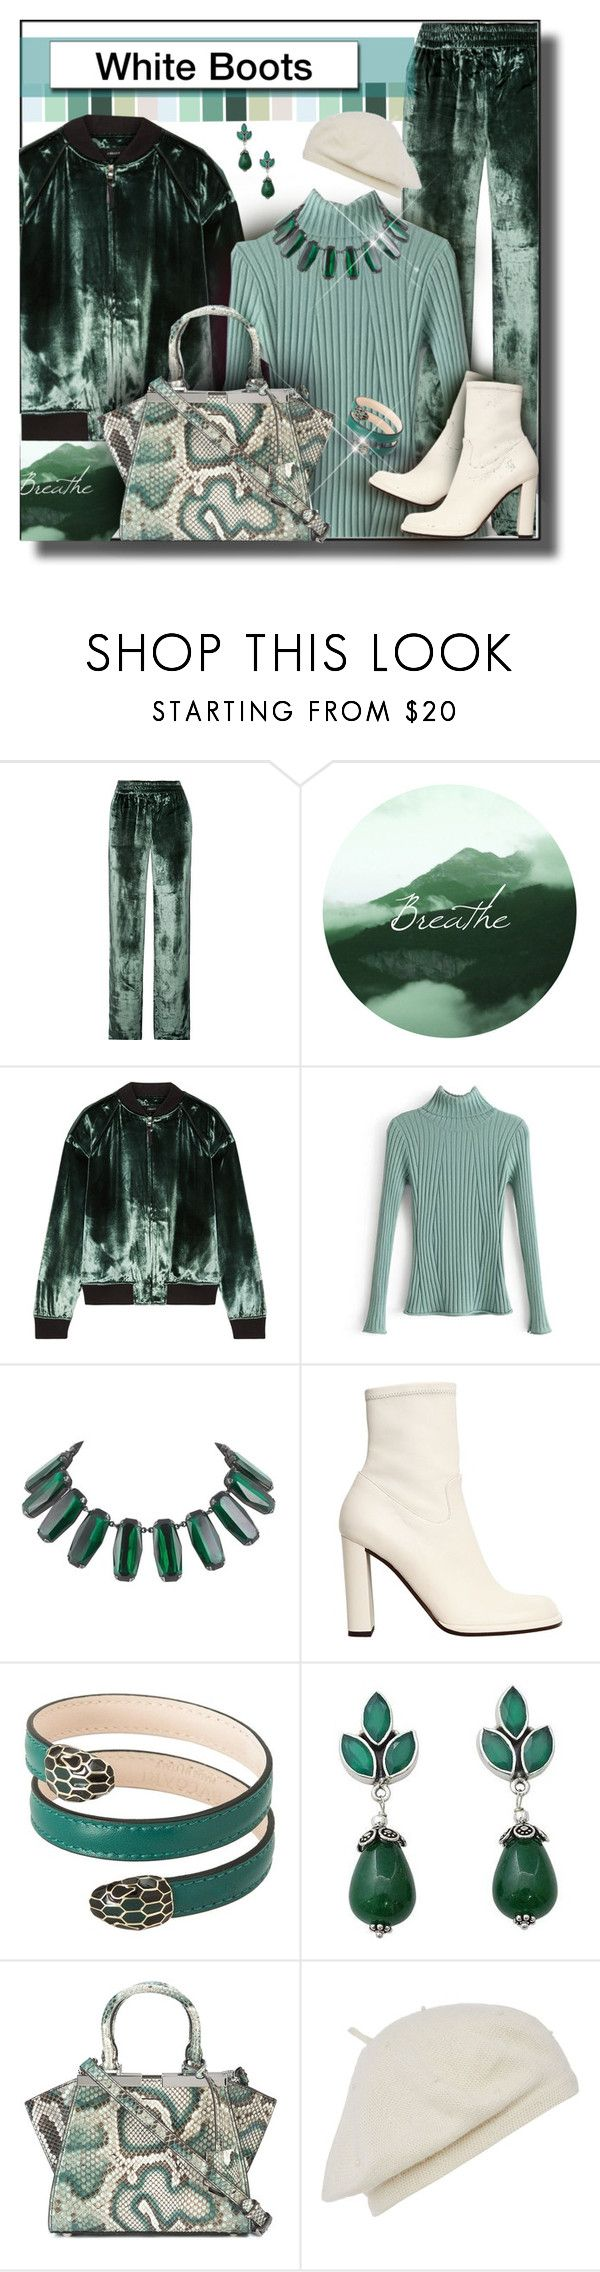 """White Boots"" by franceseattle ❤ liked on Polyvore featuring J Brand, Mulberry, Trilogy, Bulgari, NOVICA and Fendi"